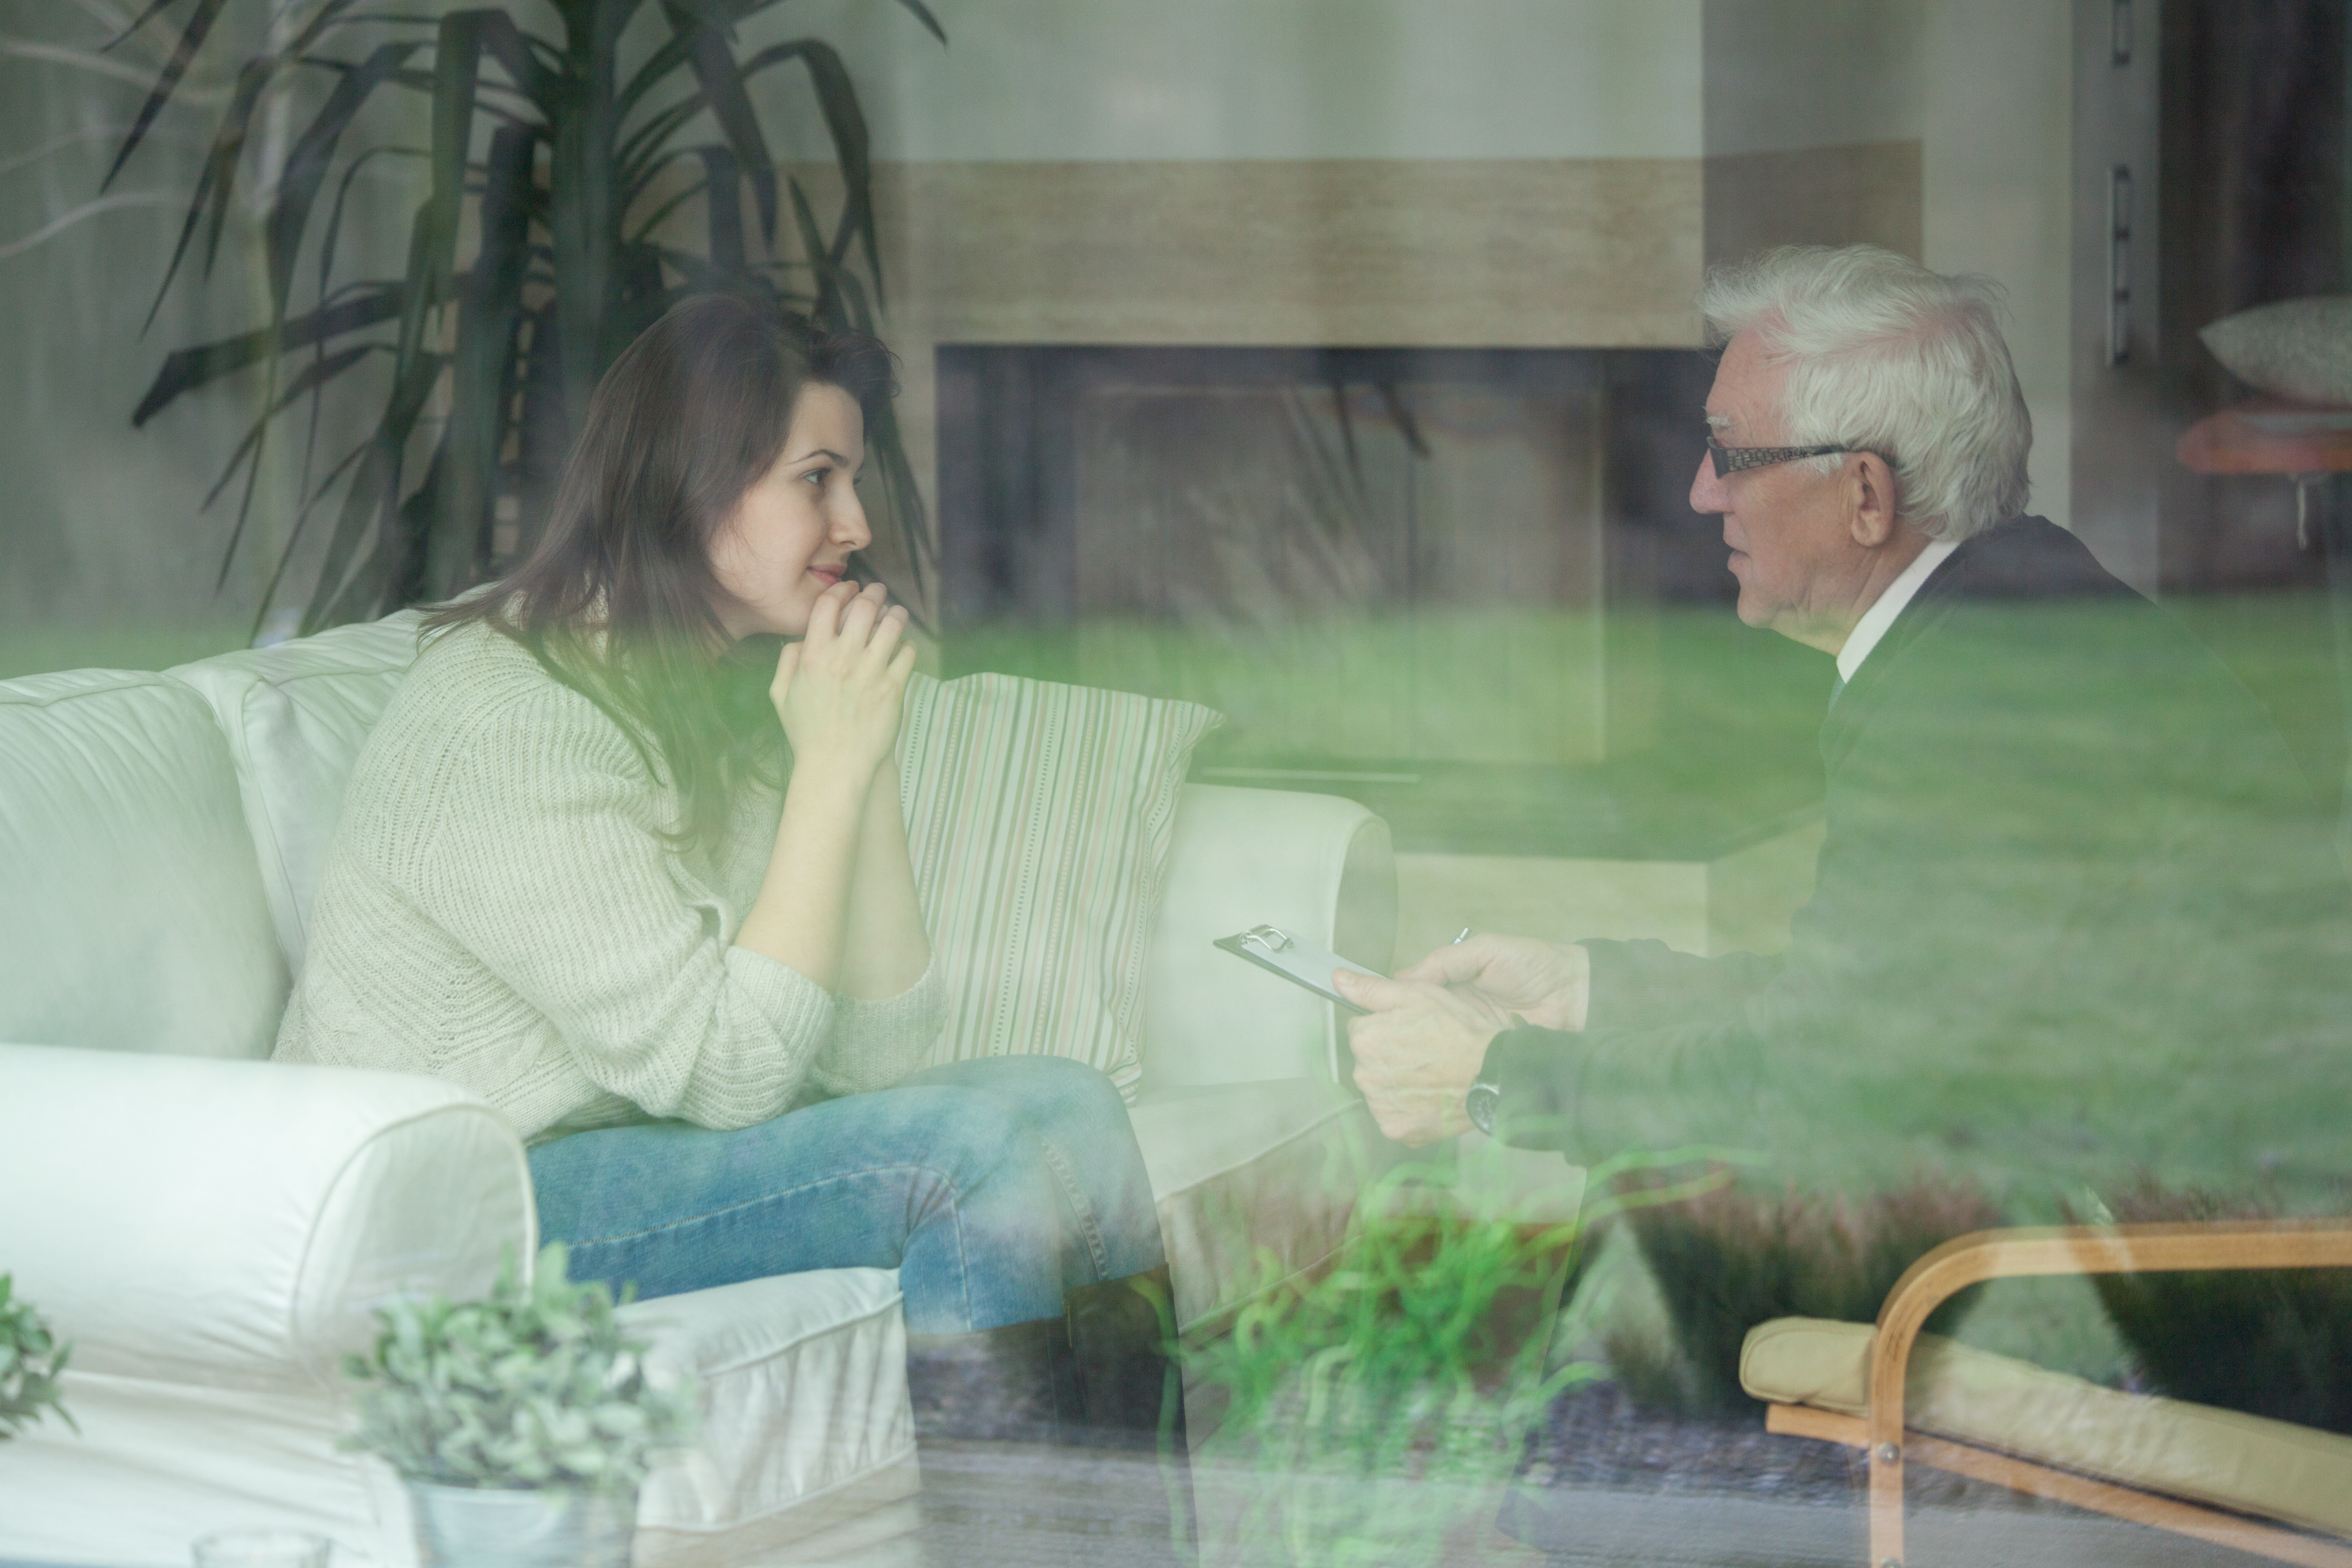 Elder therapist consulting young patient at home